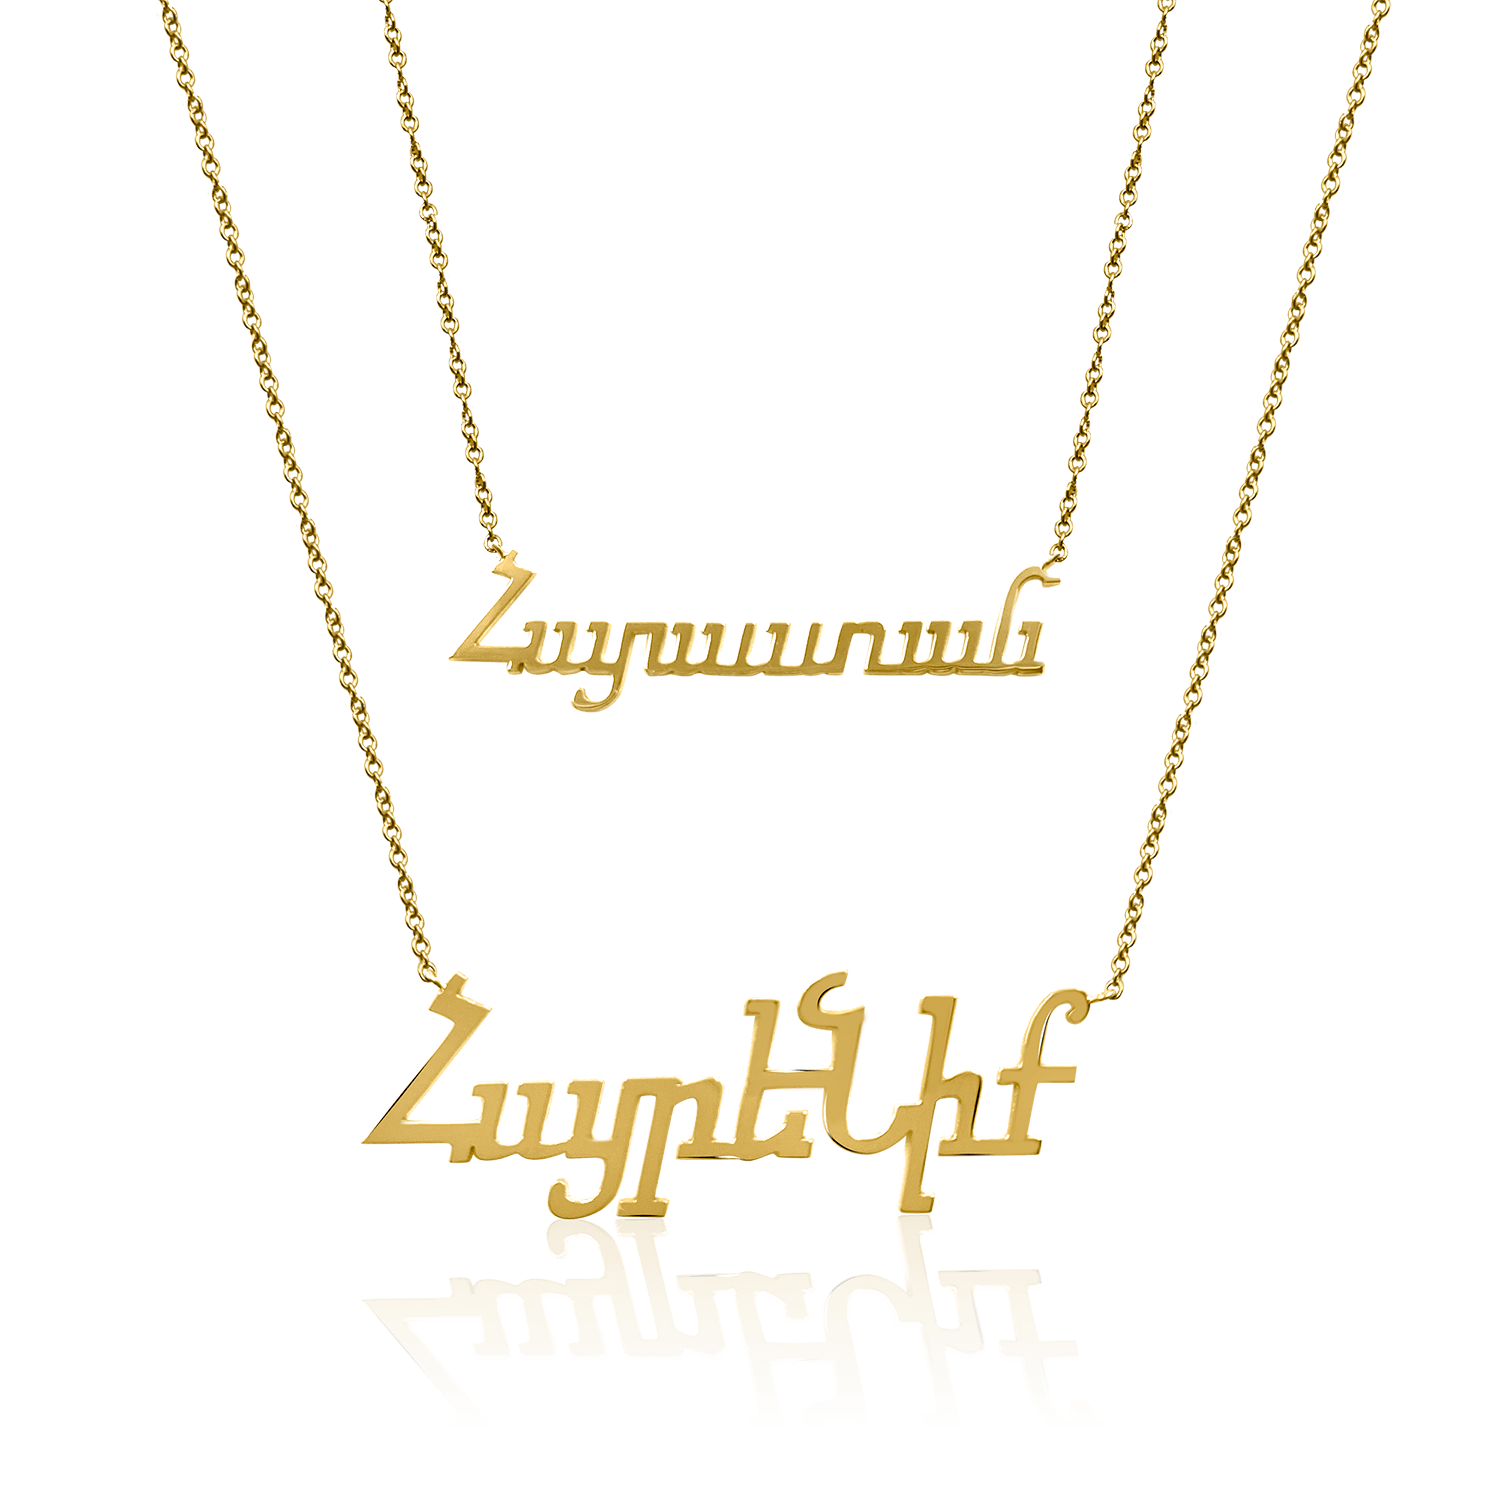 Personalized Armenian Letter Necklace